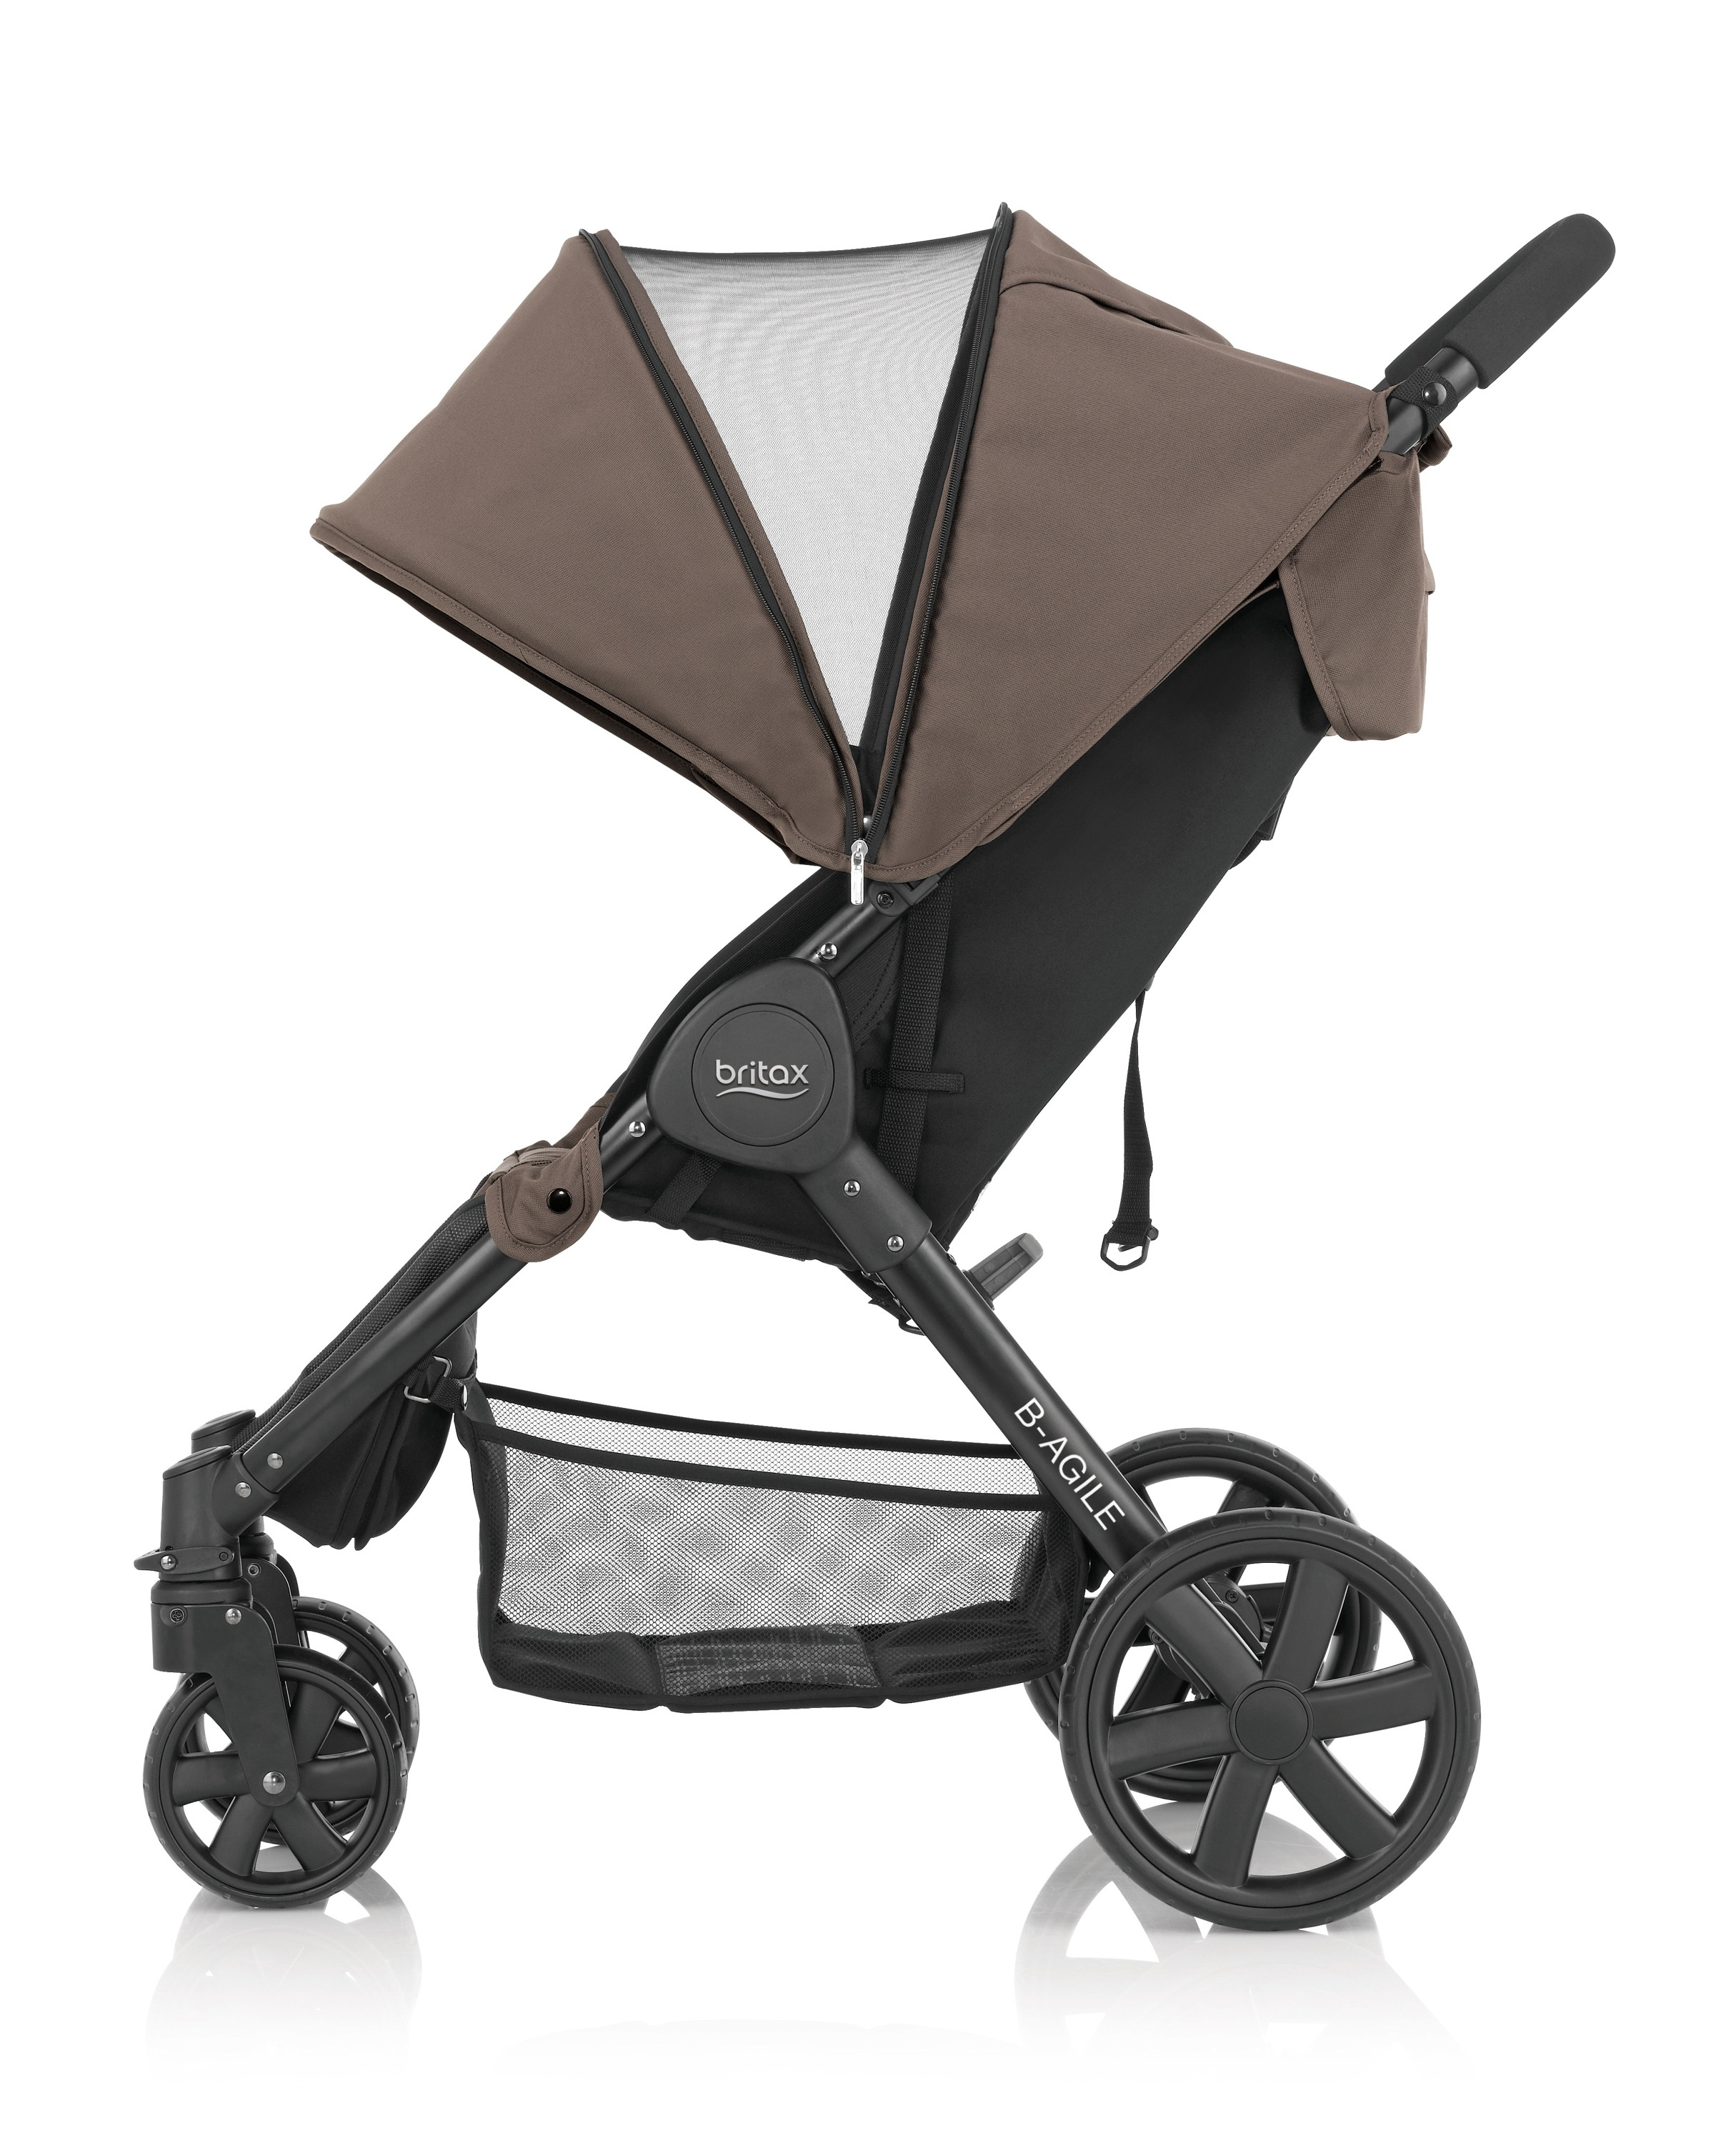 britax b agile 4 rattaat fossil brown rattaat lastenvaunut ja rattaat. Black Bedroom Furniture Sets. Home Design Ideas